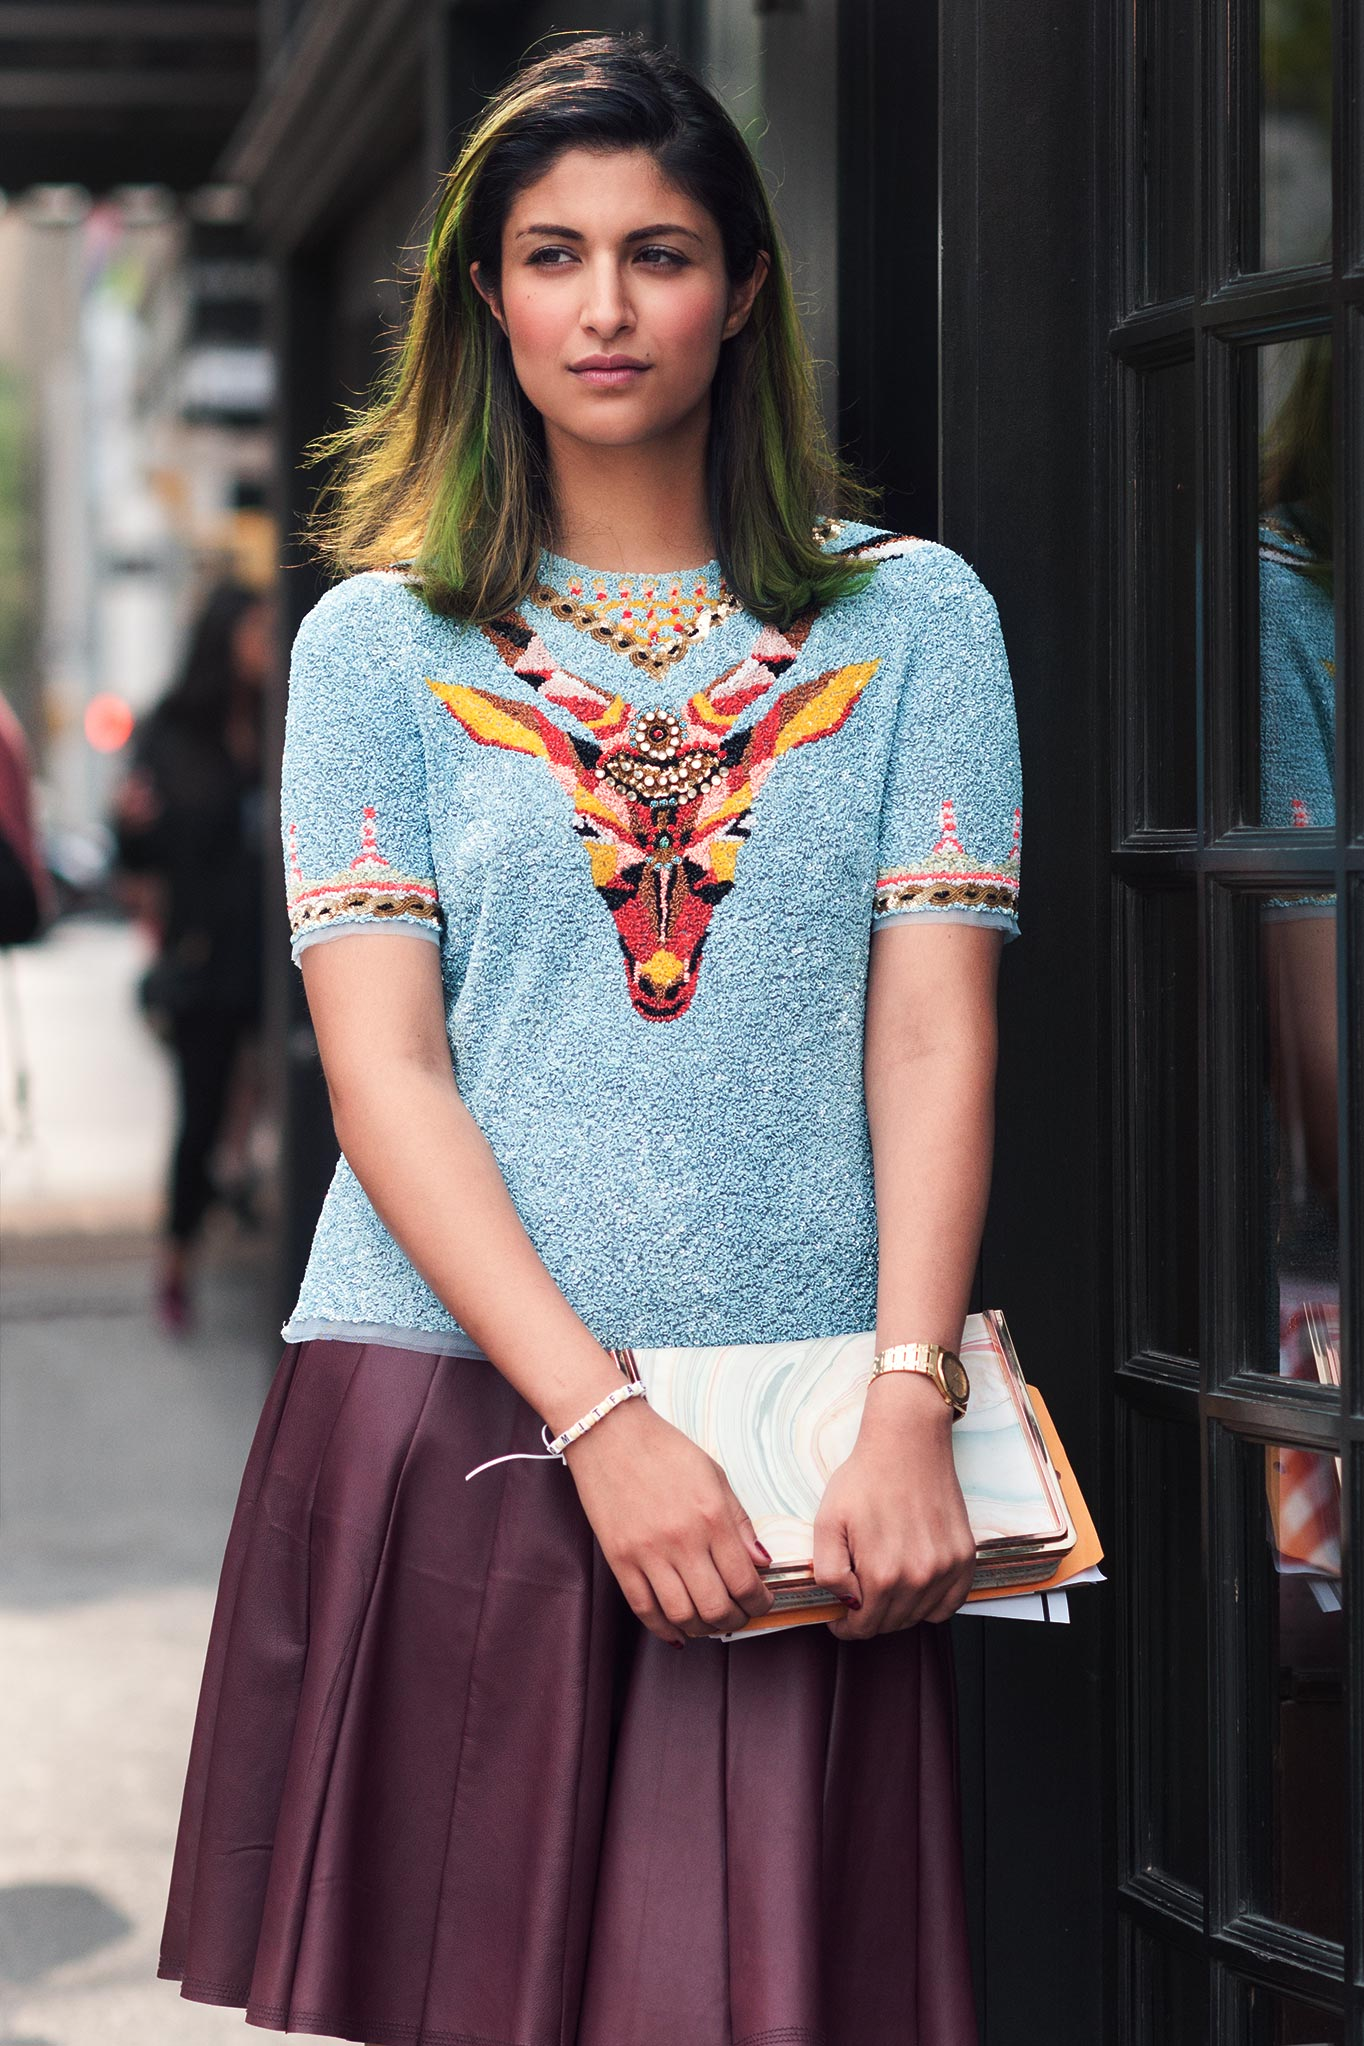 Preetma Singh at New York Fashion Week Spring/Summer 2014